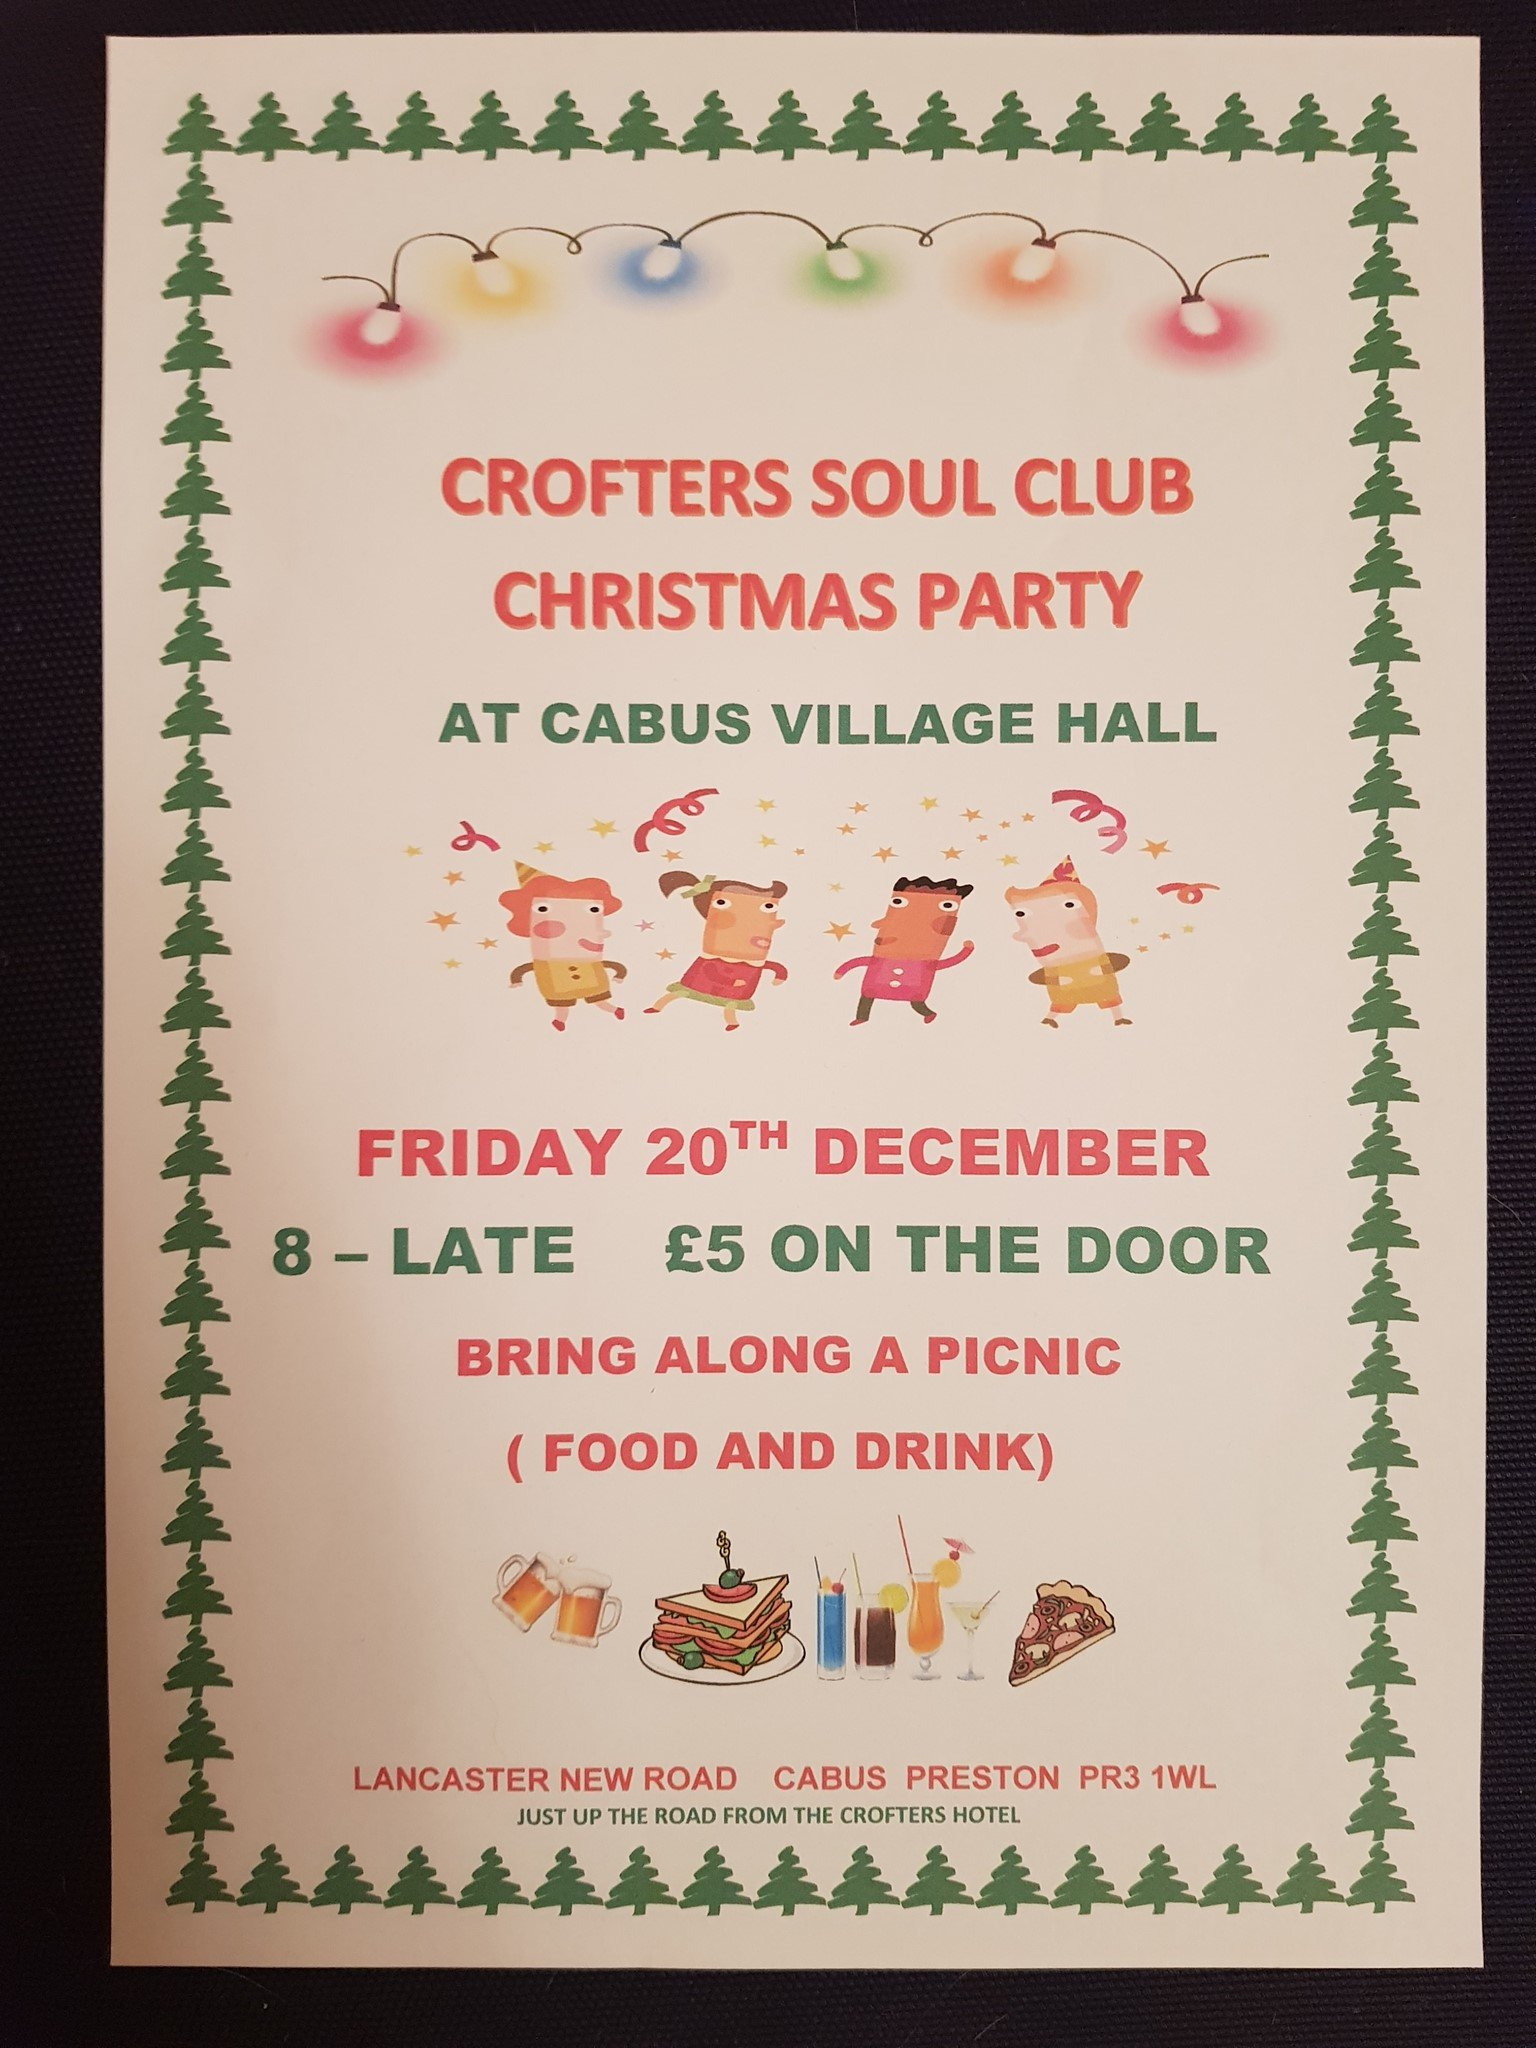 Christmas Crofters At Cabus Village Hall flyer